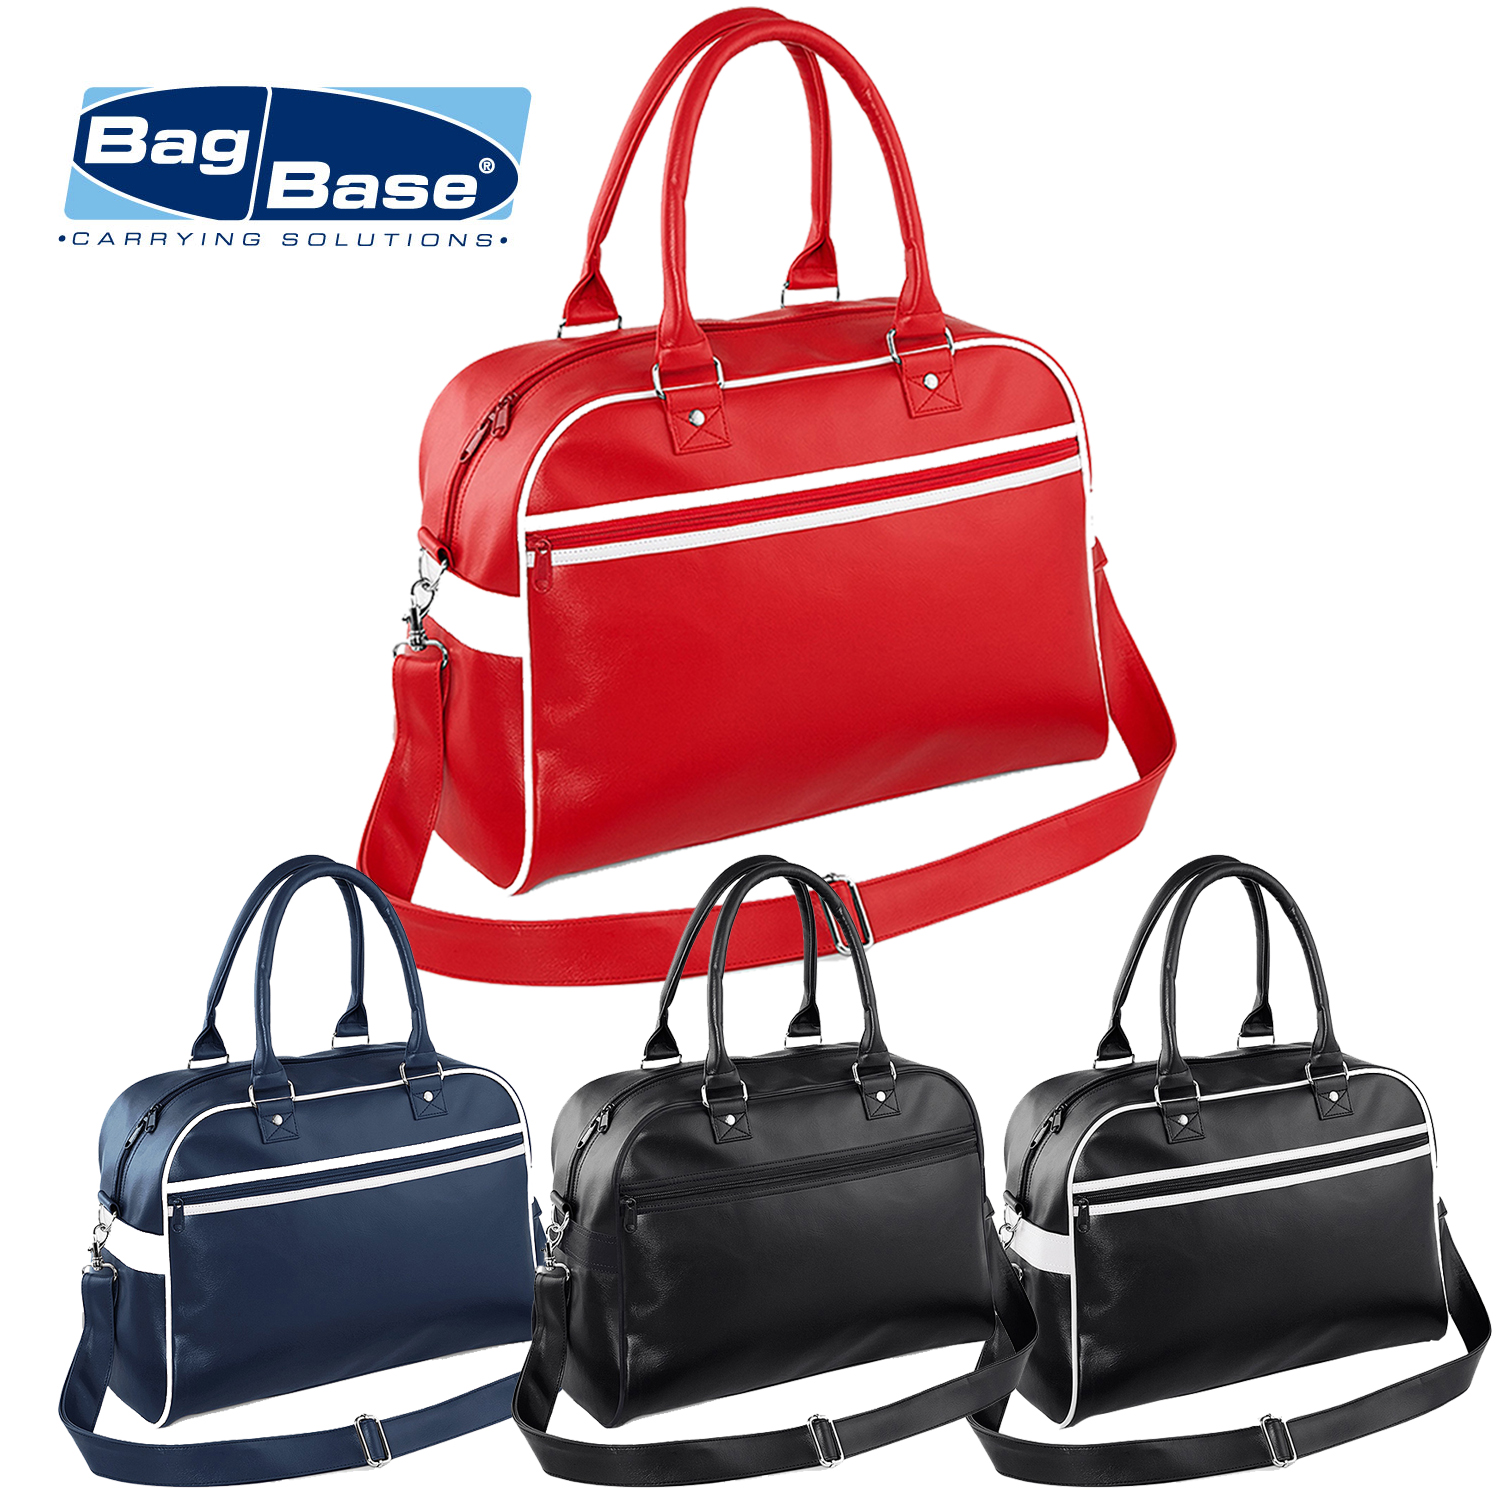 Bag Base BagBase Original R/étro Messager